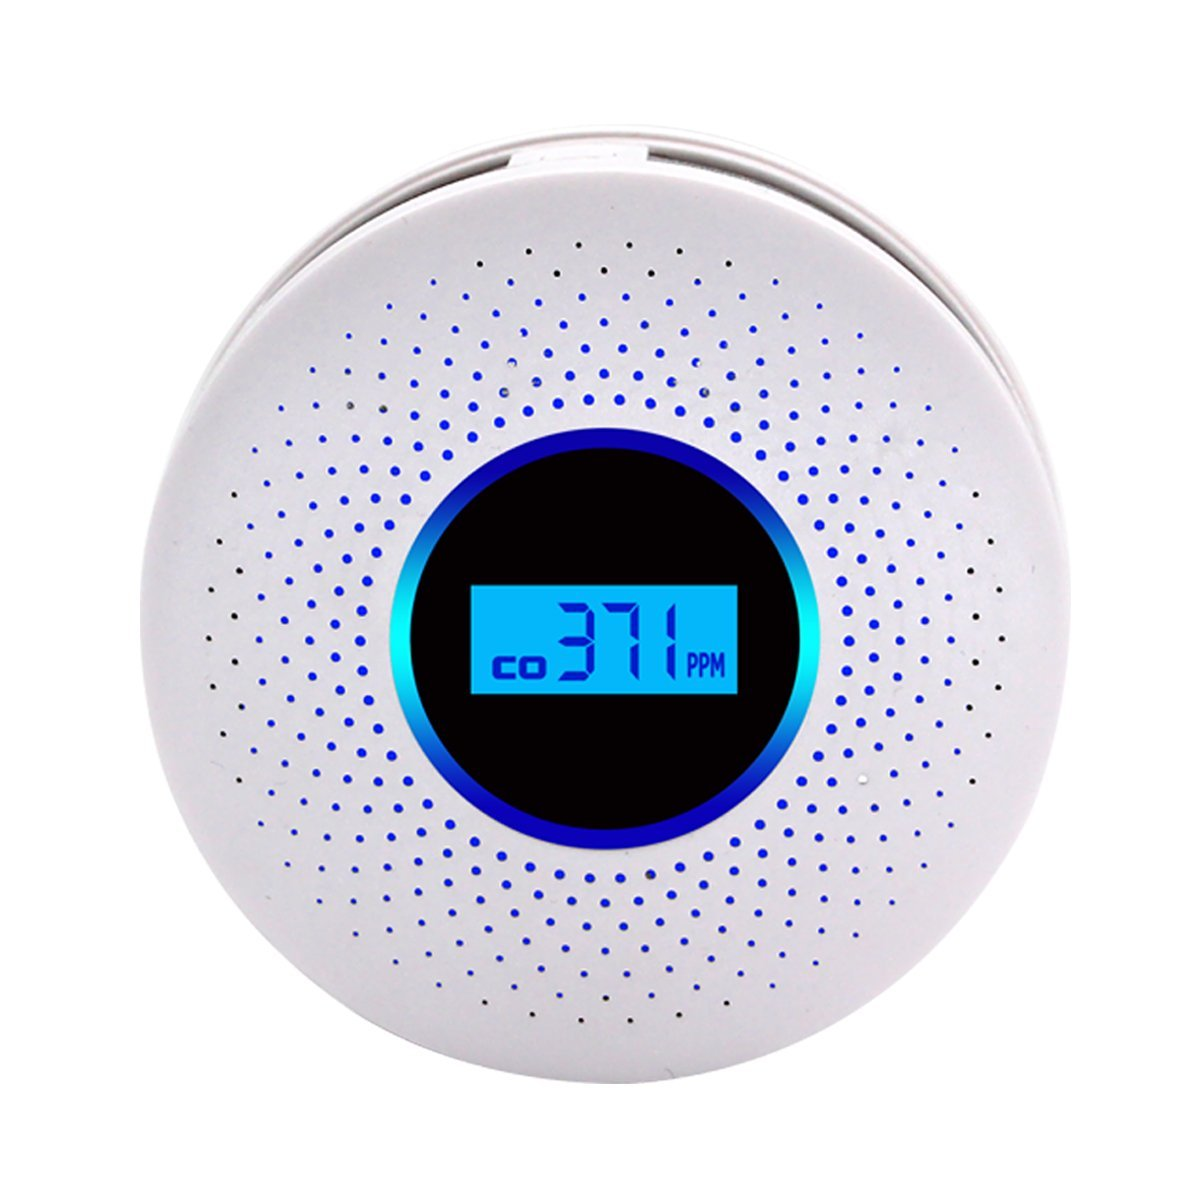 MIXSlight Smoke and Carbon Monoxide Detector Alarm,Battery Operated Carbon Monoxide CO Detector with Sound Warning and Digital Display,White